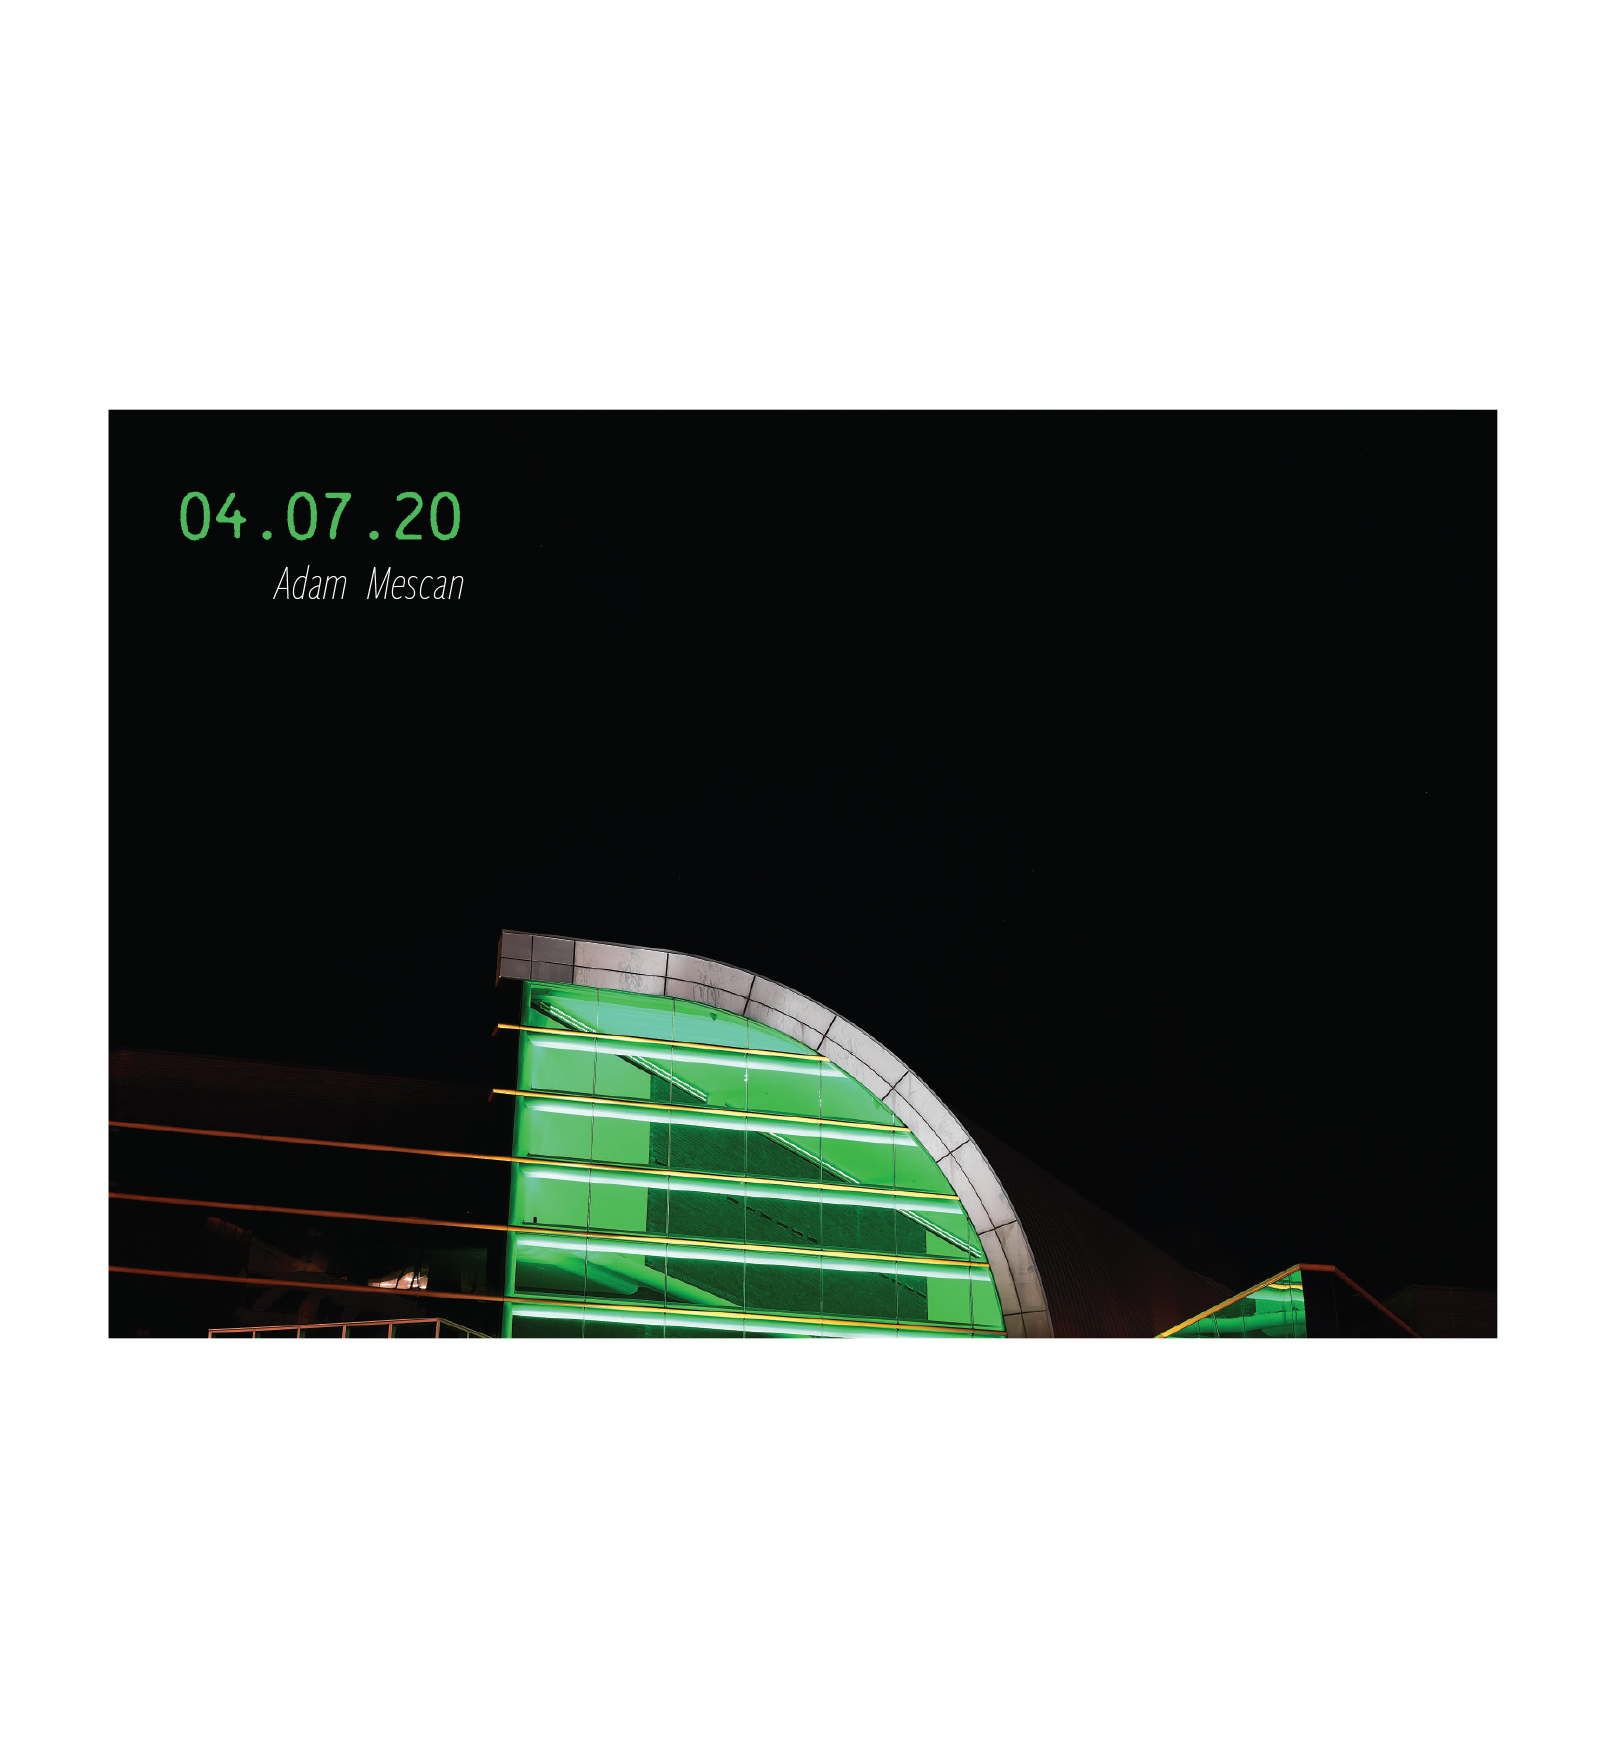 The top of the Kentucky Center, lit in green. 04.07.2020, by Adam Mescan